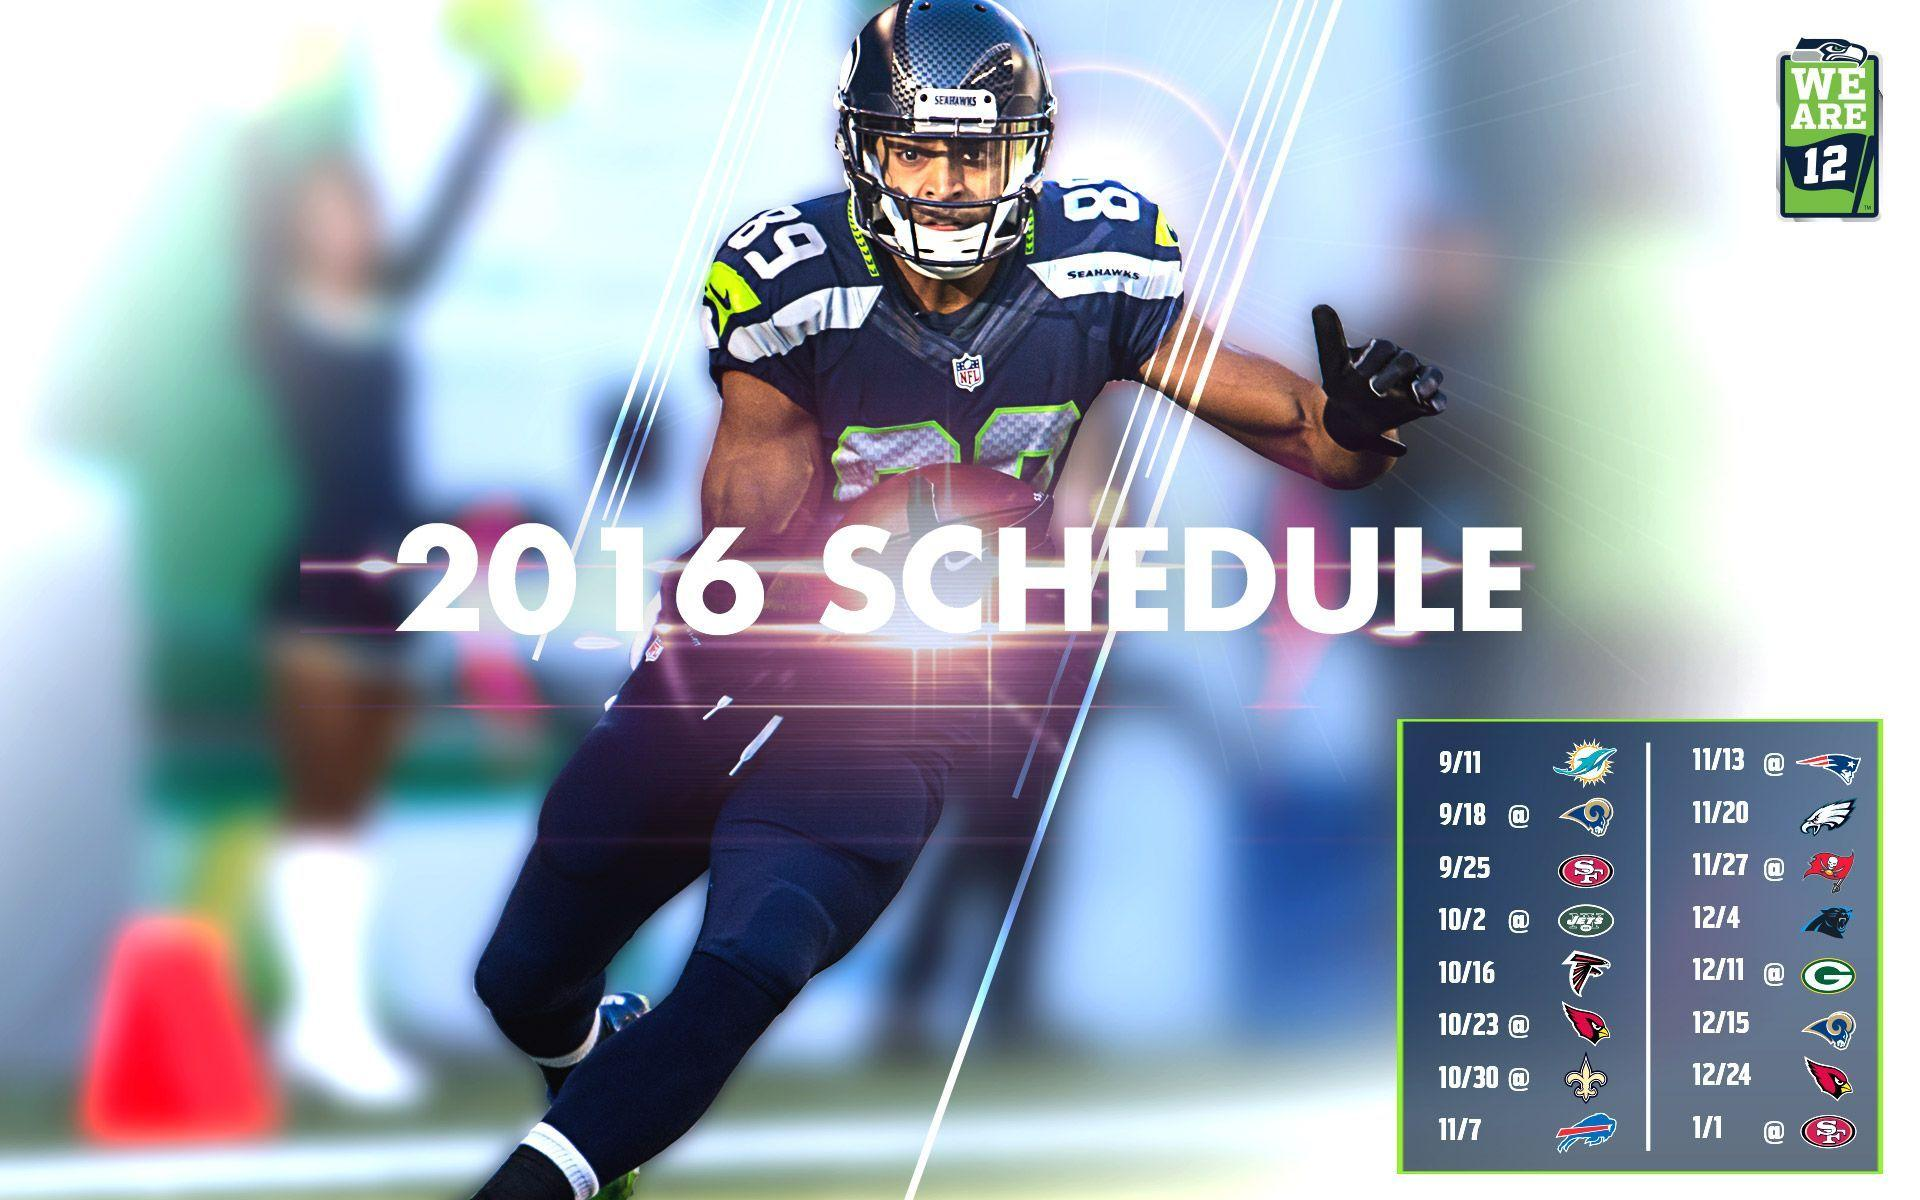 seahawks high resolution wallpaper - photo #23